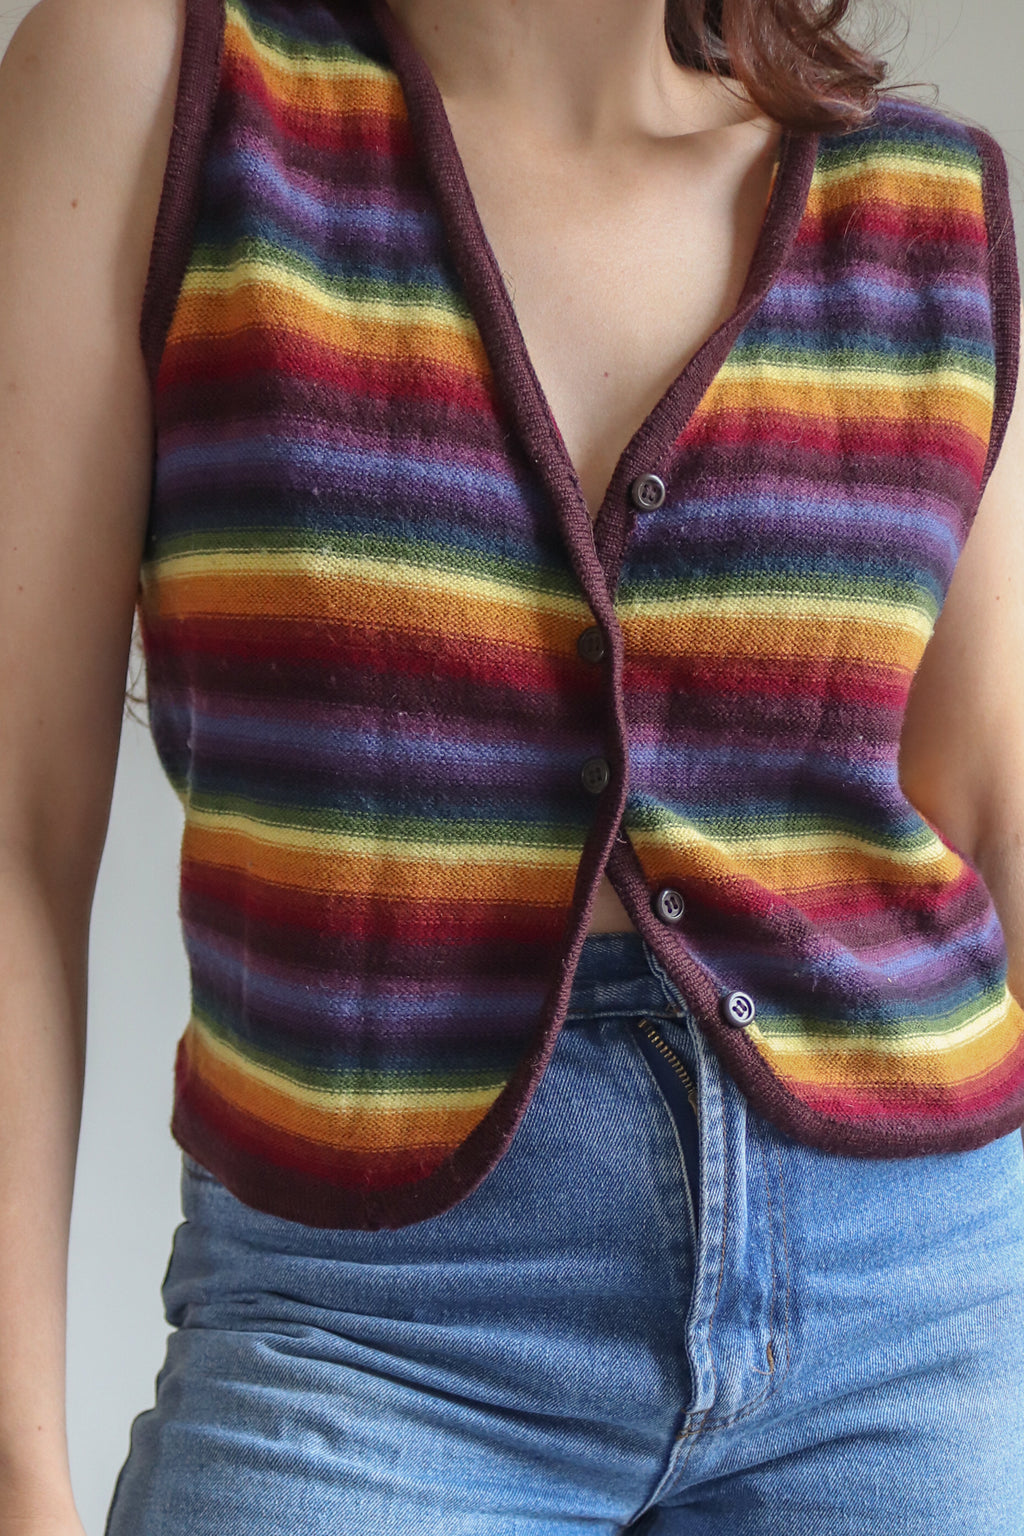 VintageV-Neck Jumper in Purple - S - Dirty Disco